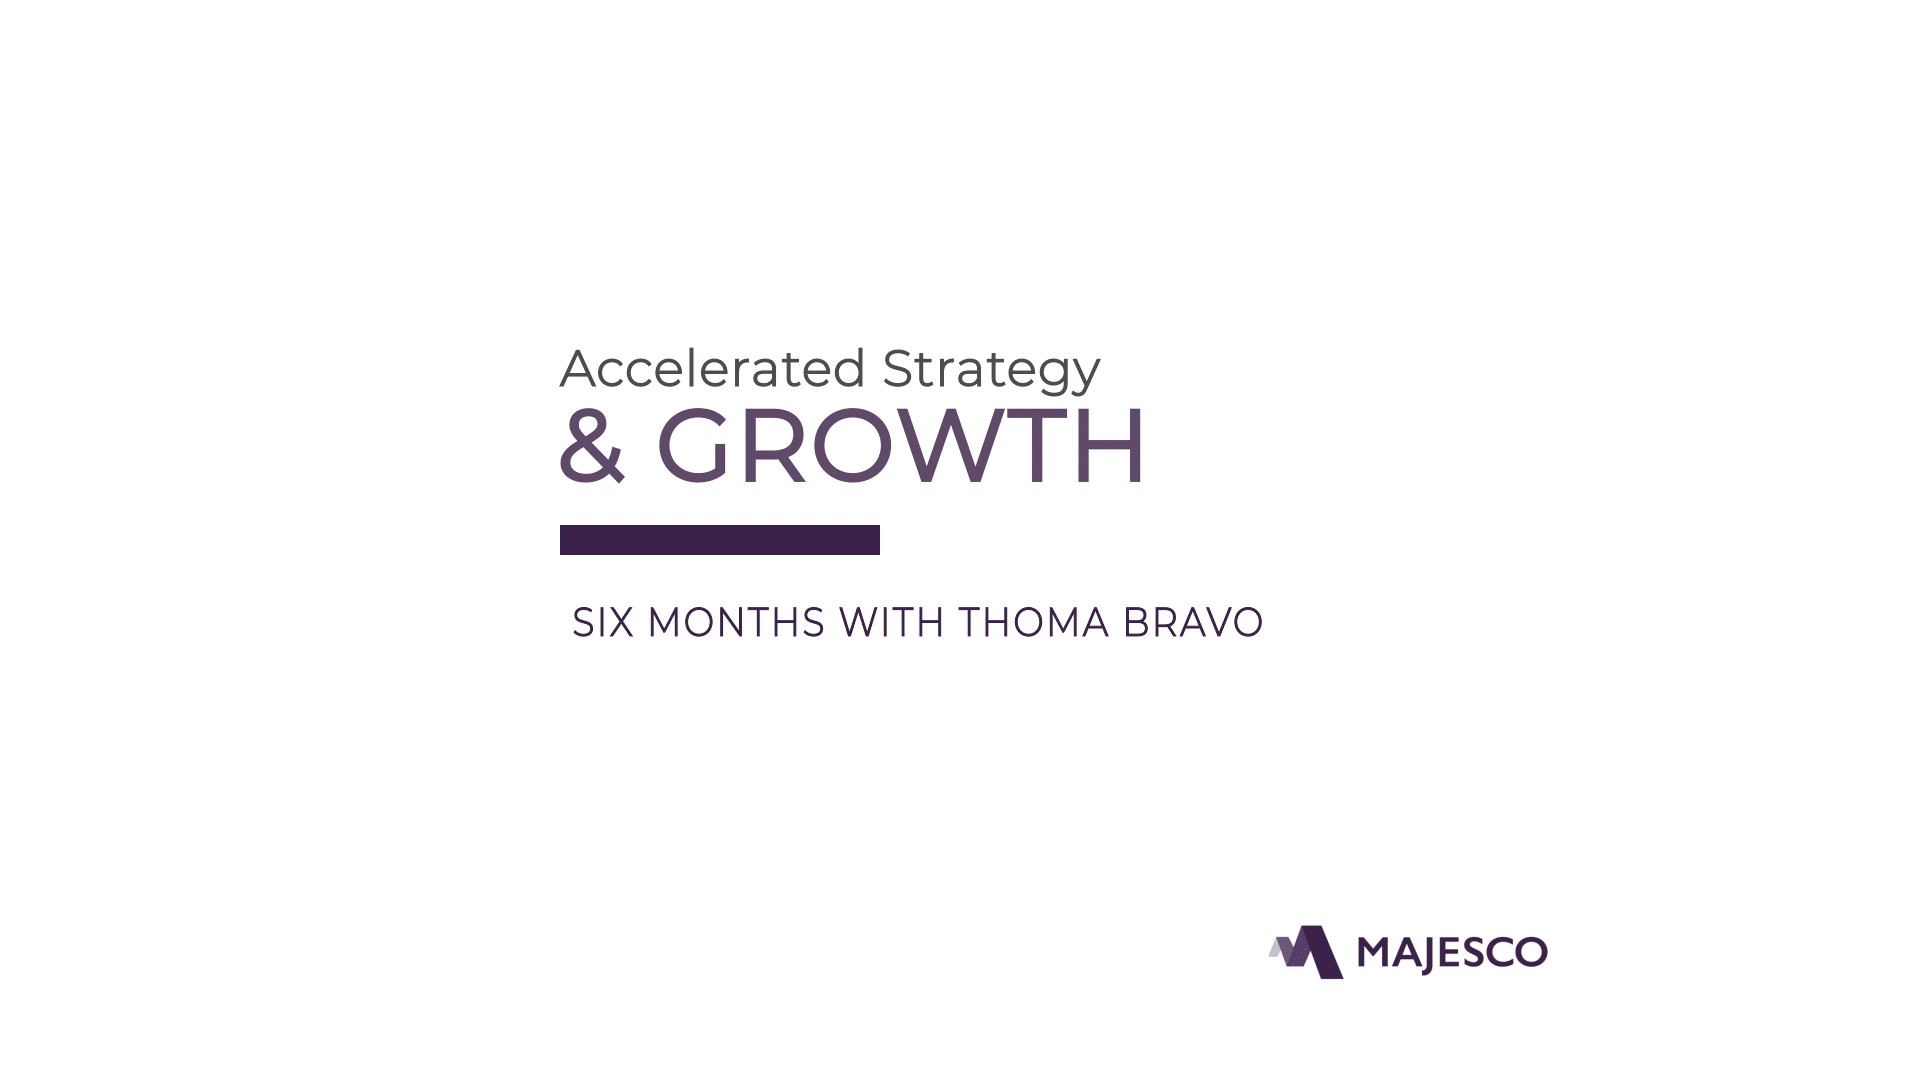 Majesco & Thoma Bravo 6 Month Review